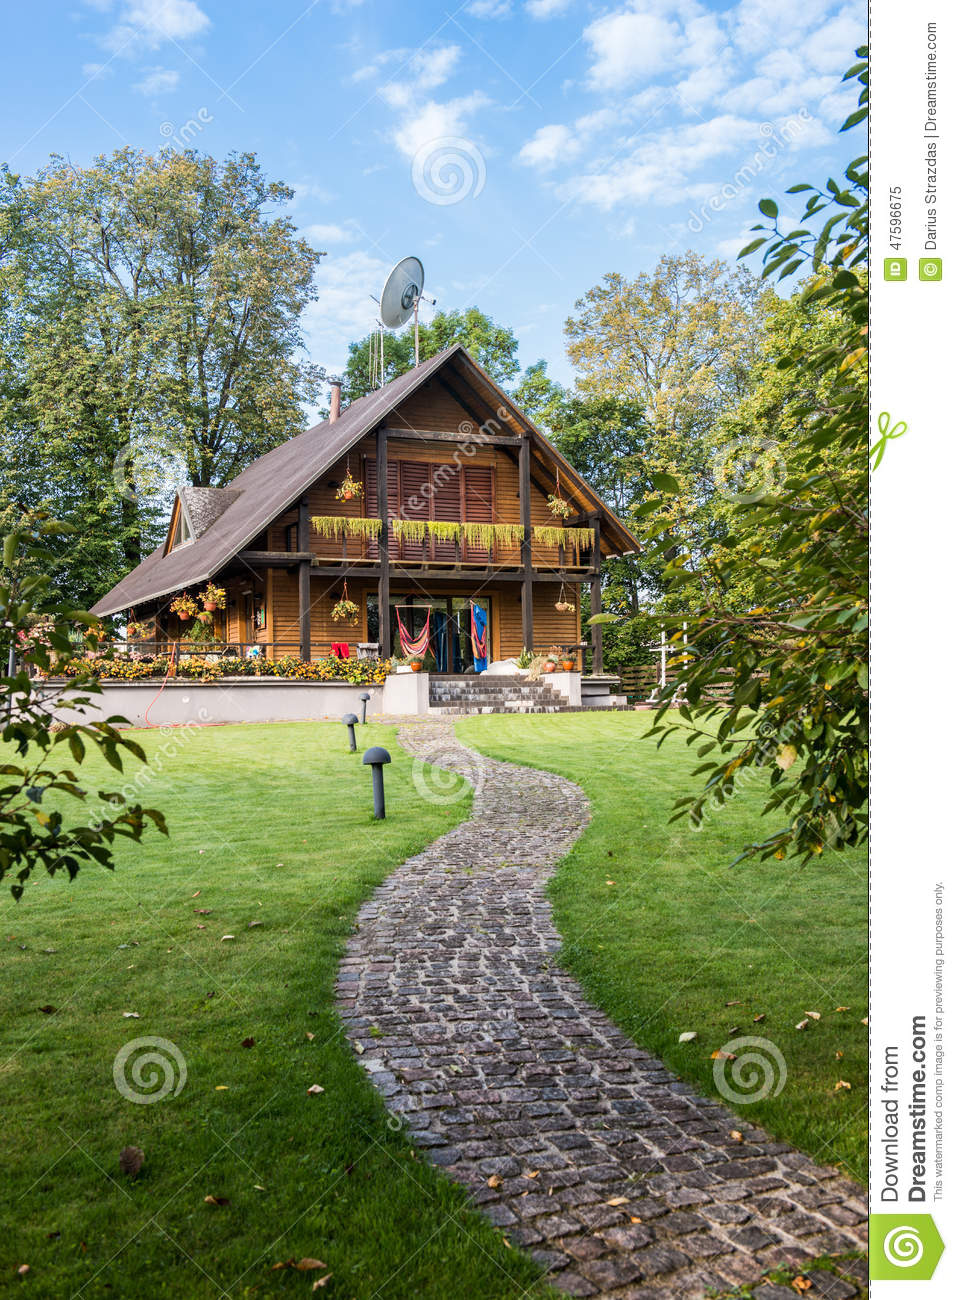 Home Time Road Roblox Id: Wooden Country House Stock Image. Image Of Nature, Stone